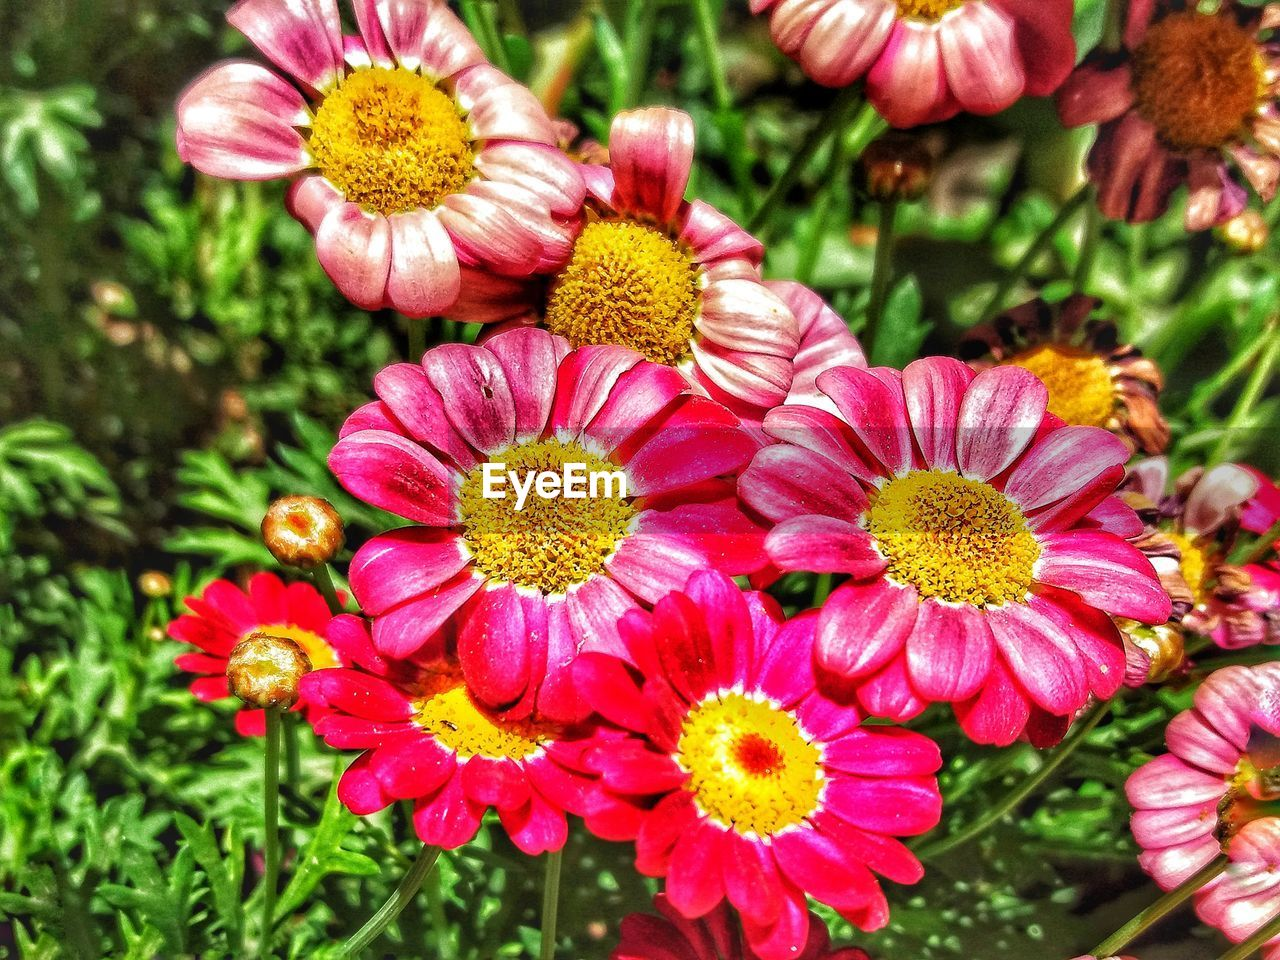 flower, nature, growth, petal, flower head, beauty in nature, freshness, fragility, plant, outdoors, day, no people, blooming, pink color, springtime, close-up